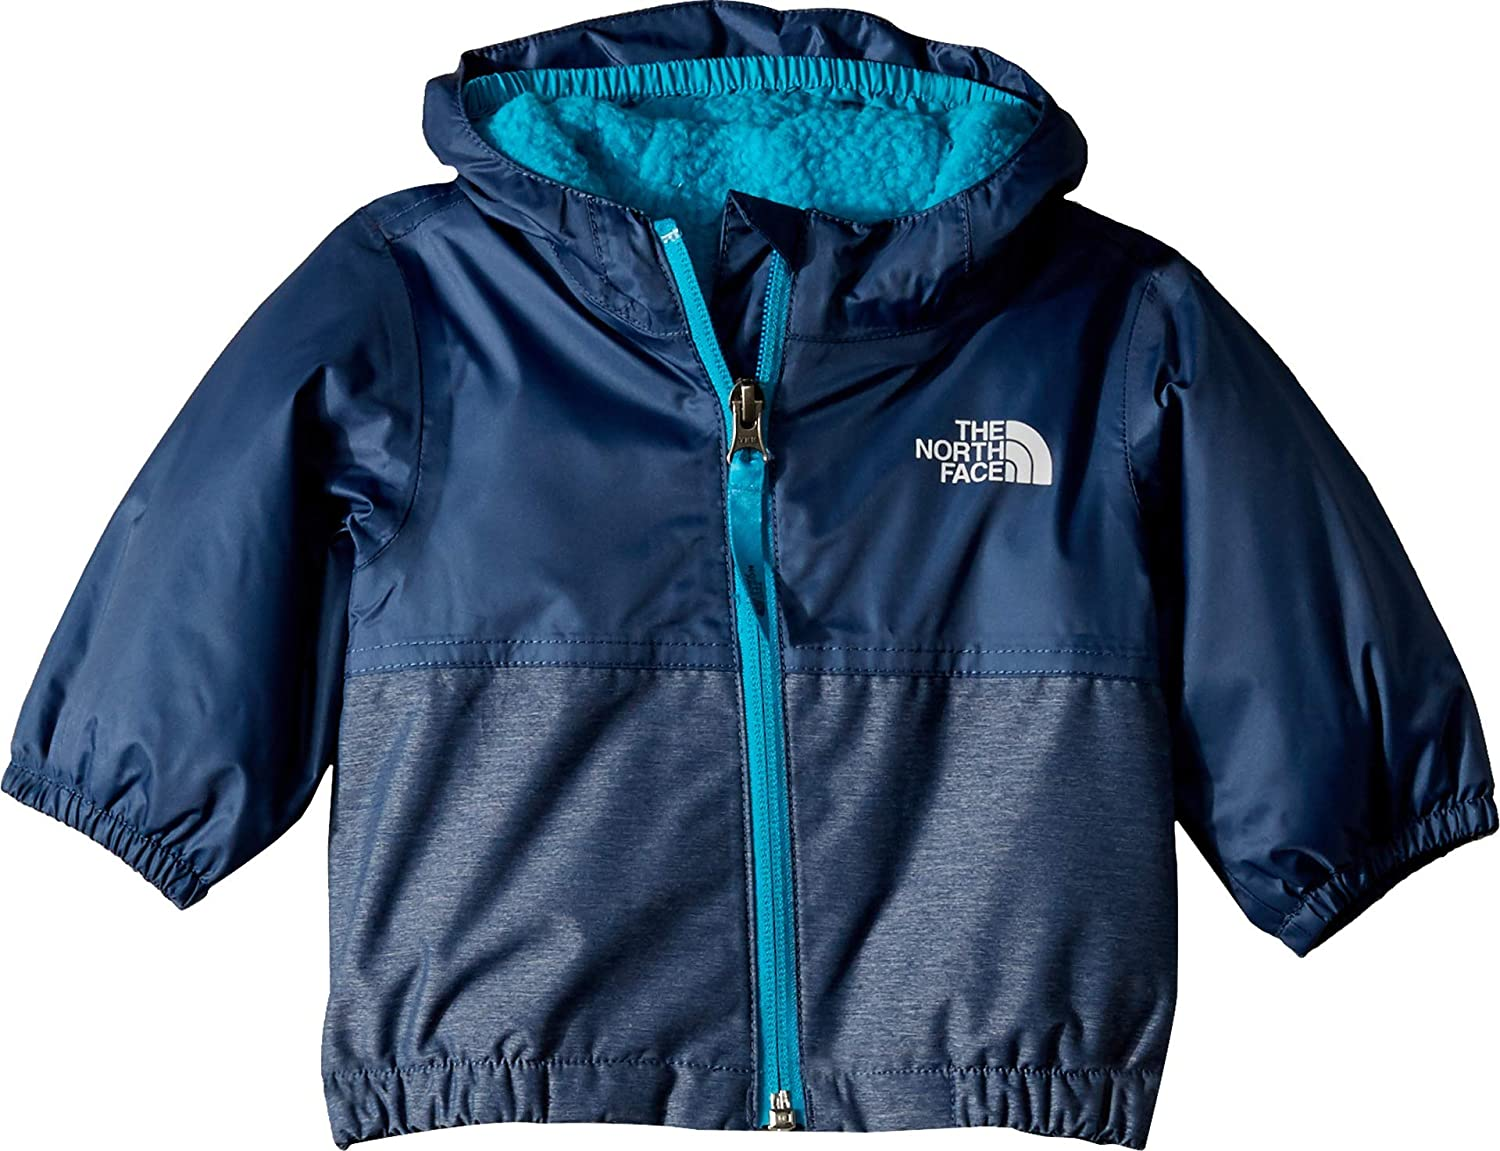 The North Face OUTERWEAR ユニセックス・キッズ